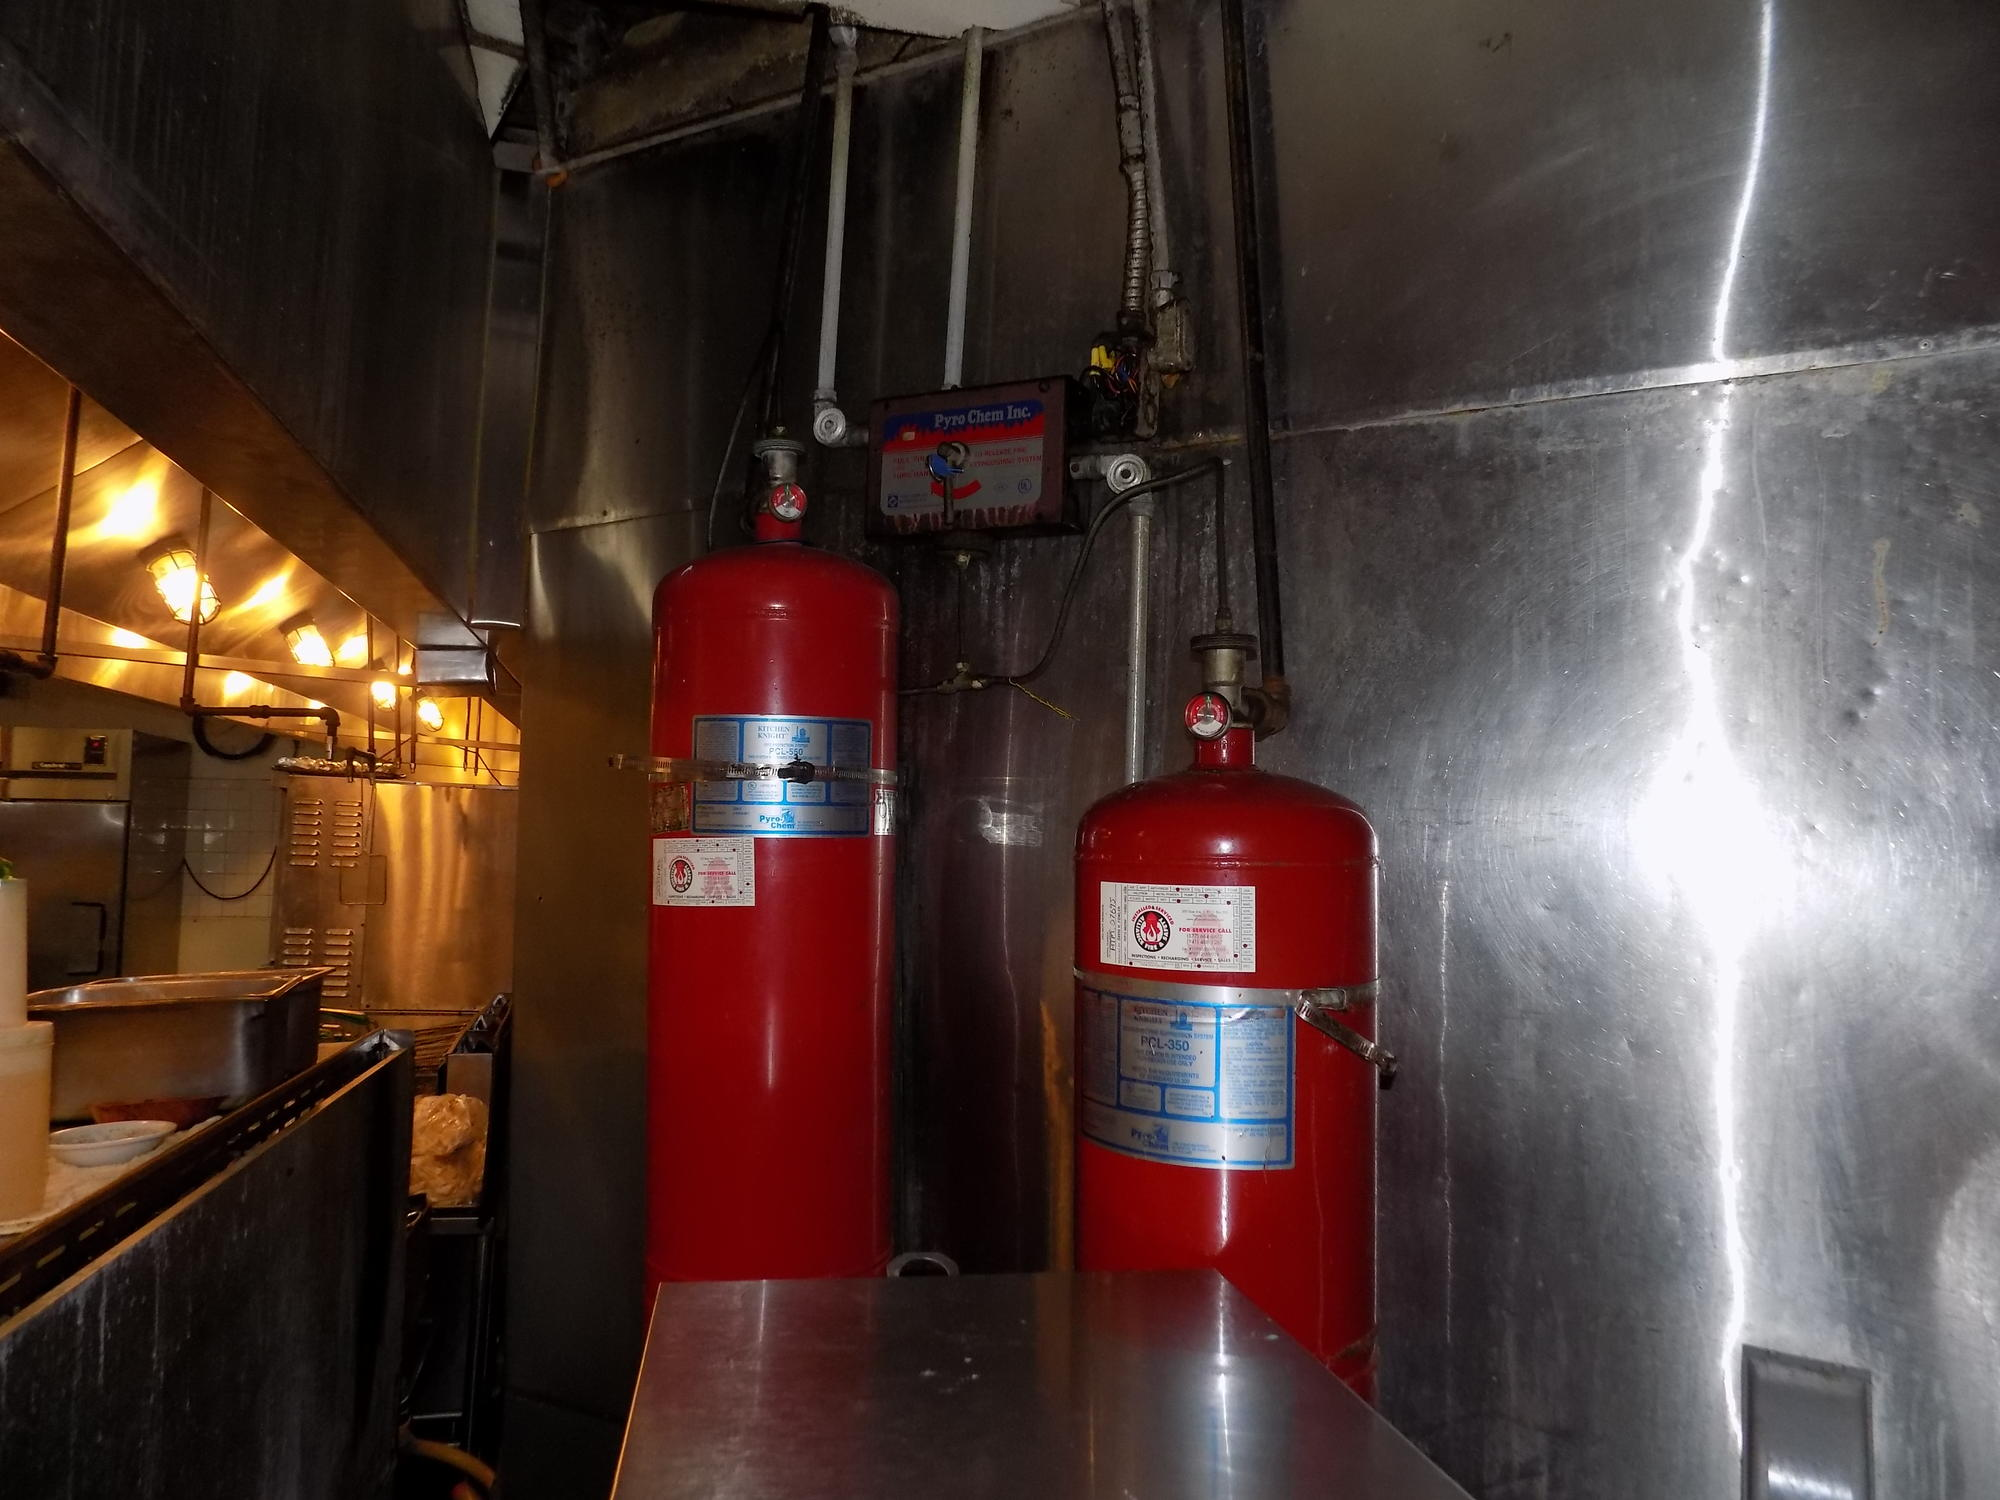 Commercial kitchen fire suppression inspection.